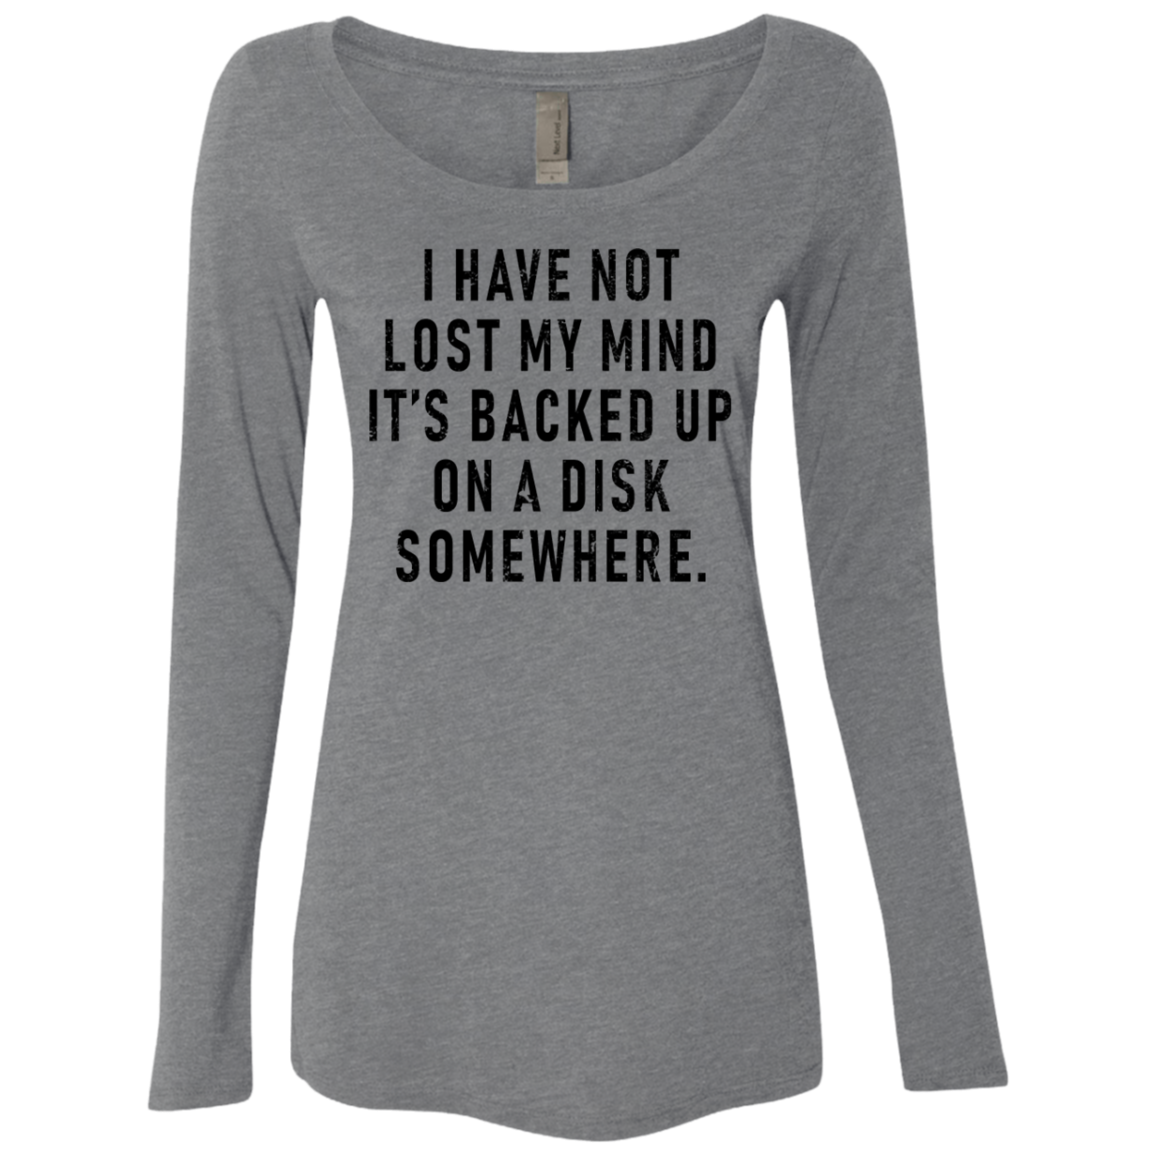 I Have Not Lost My Mind It's Backed Up On A Disk Somewhere Women's Long Sleeve Tee